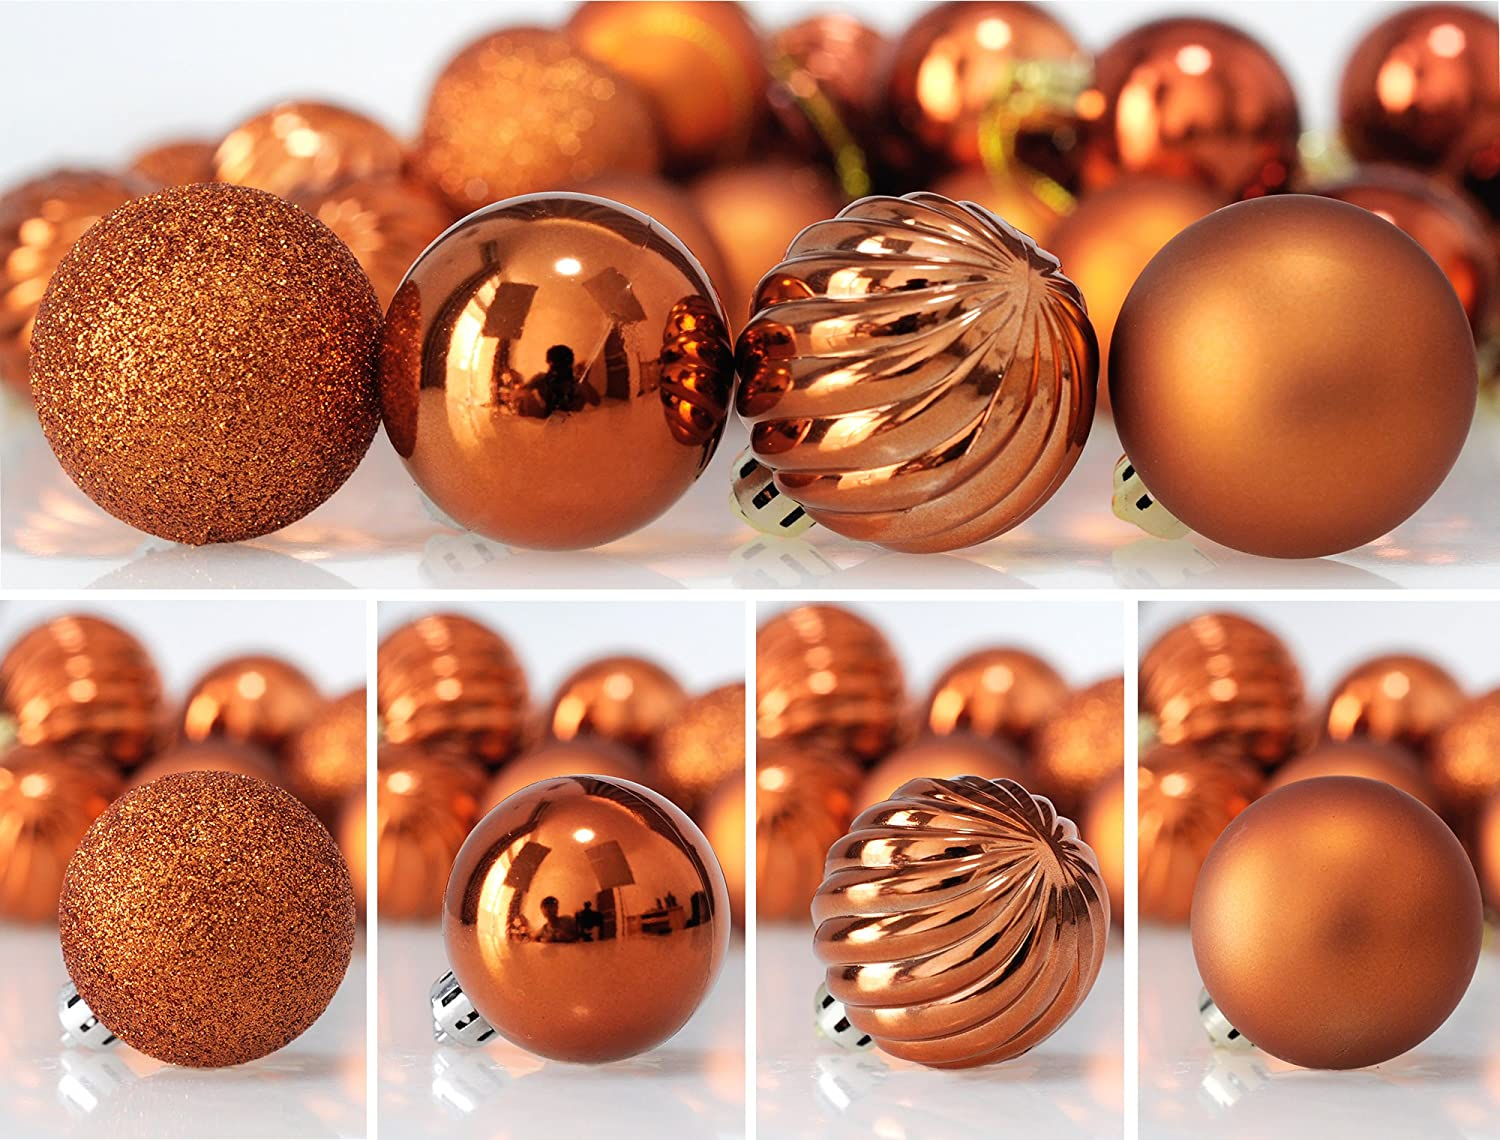 Amazon.com: KI Store 24ct Christmas Ball Ornaments Shatterproof Christmas  Decorations Tree Balls For Holiday Wedding Party Decoration, Tree Ornaments  Hooks ...